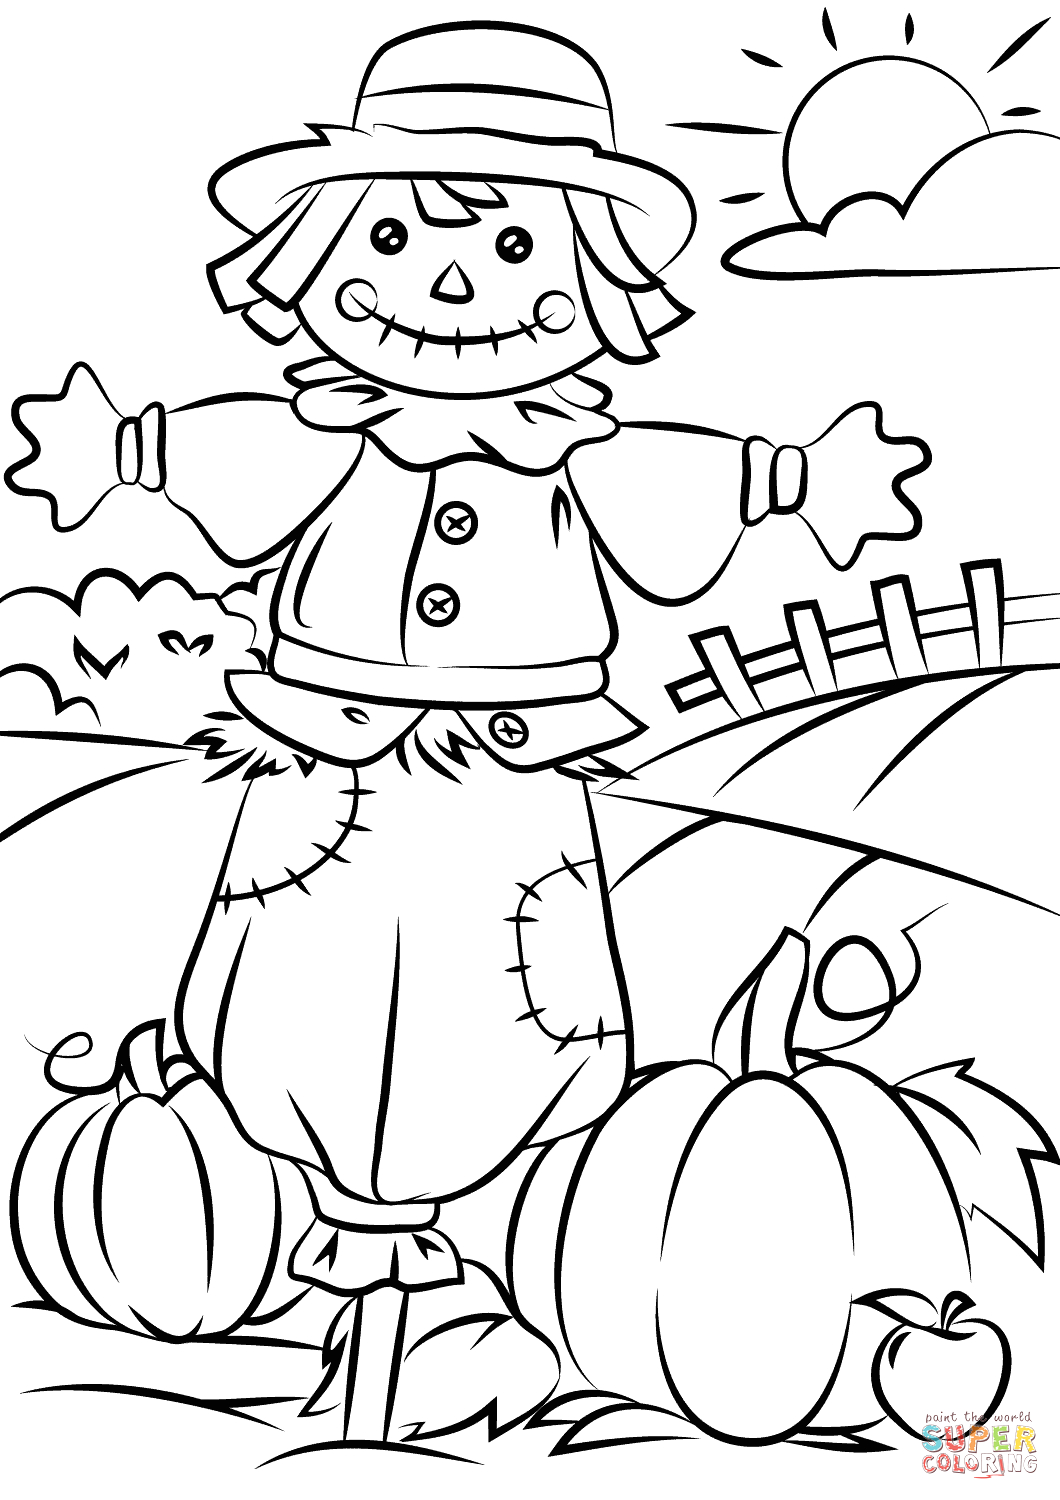 Free Printable Fall Coloring Pages for toddlers Harvest Coloring Pages Best Coloring Pages for Kids